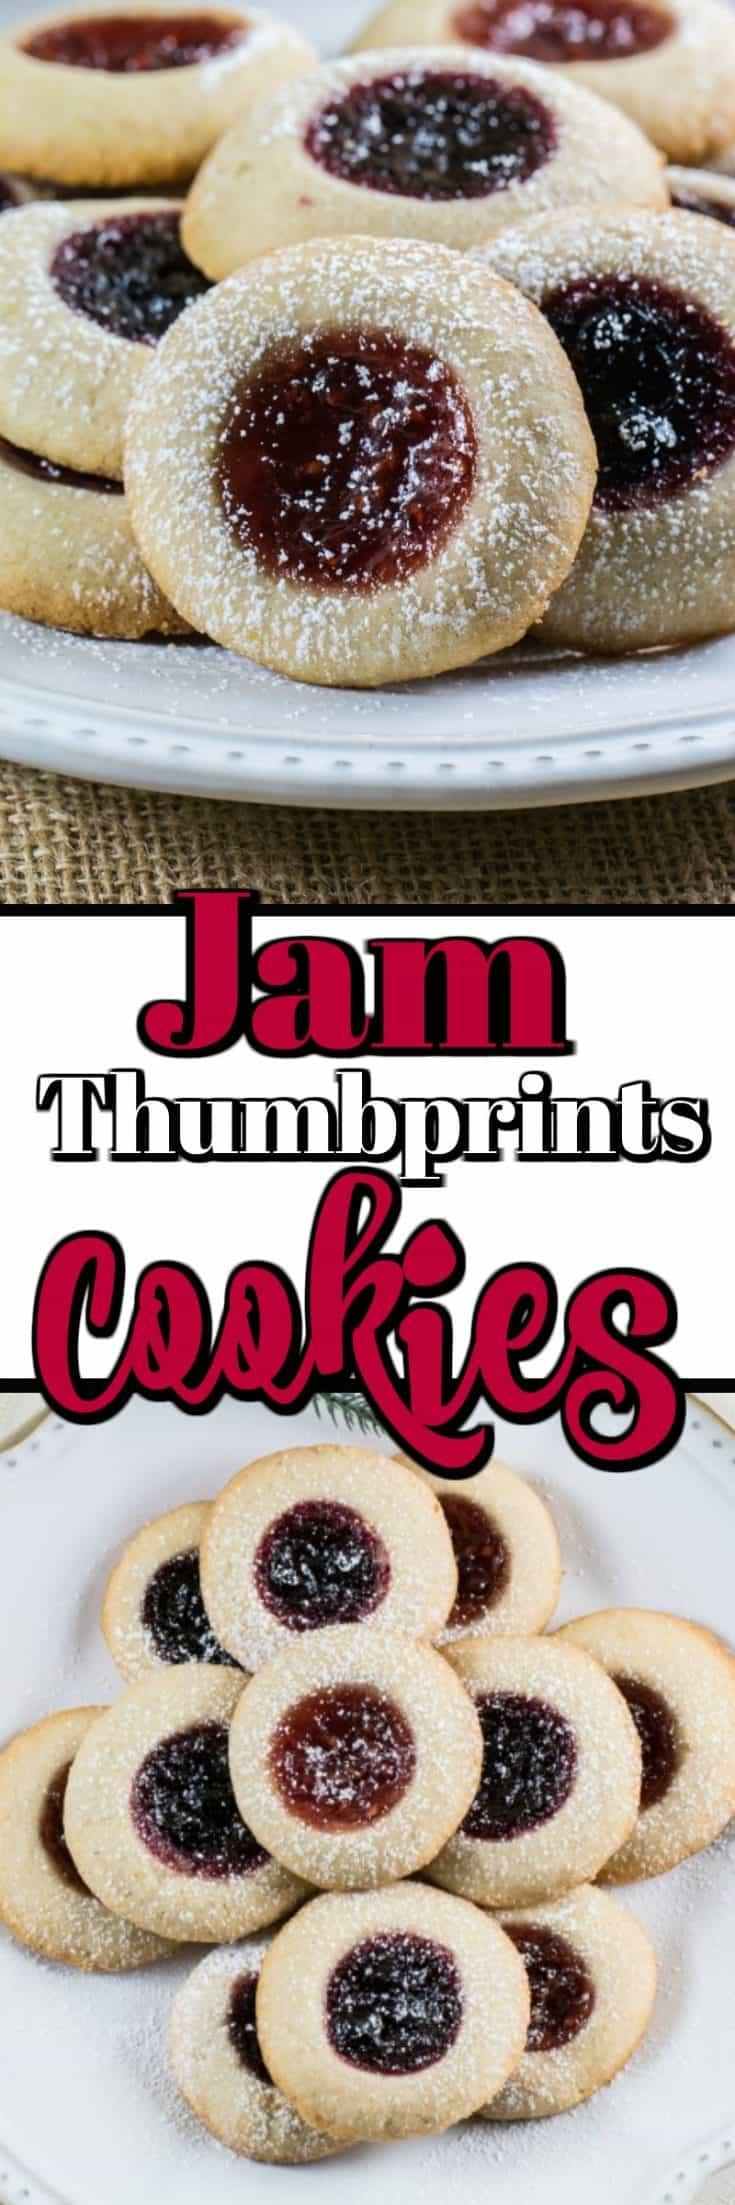 Lemon Raspberry Jam Thumbprint Cookies are the perfect buttery shortbread treat that everyone will love to indulge in over the holiday season and beyond!! #thumbprints #jam #cookies